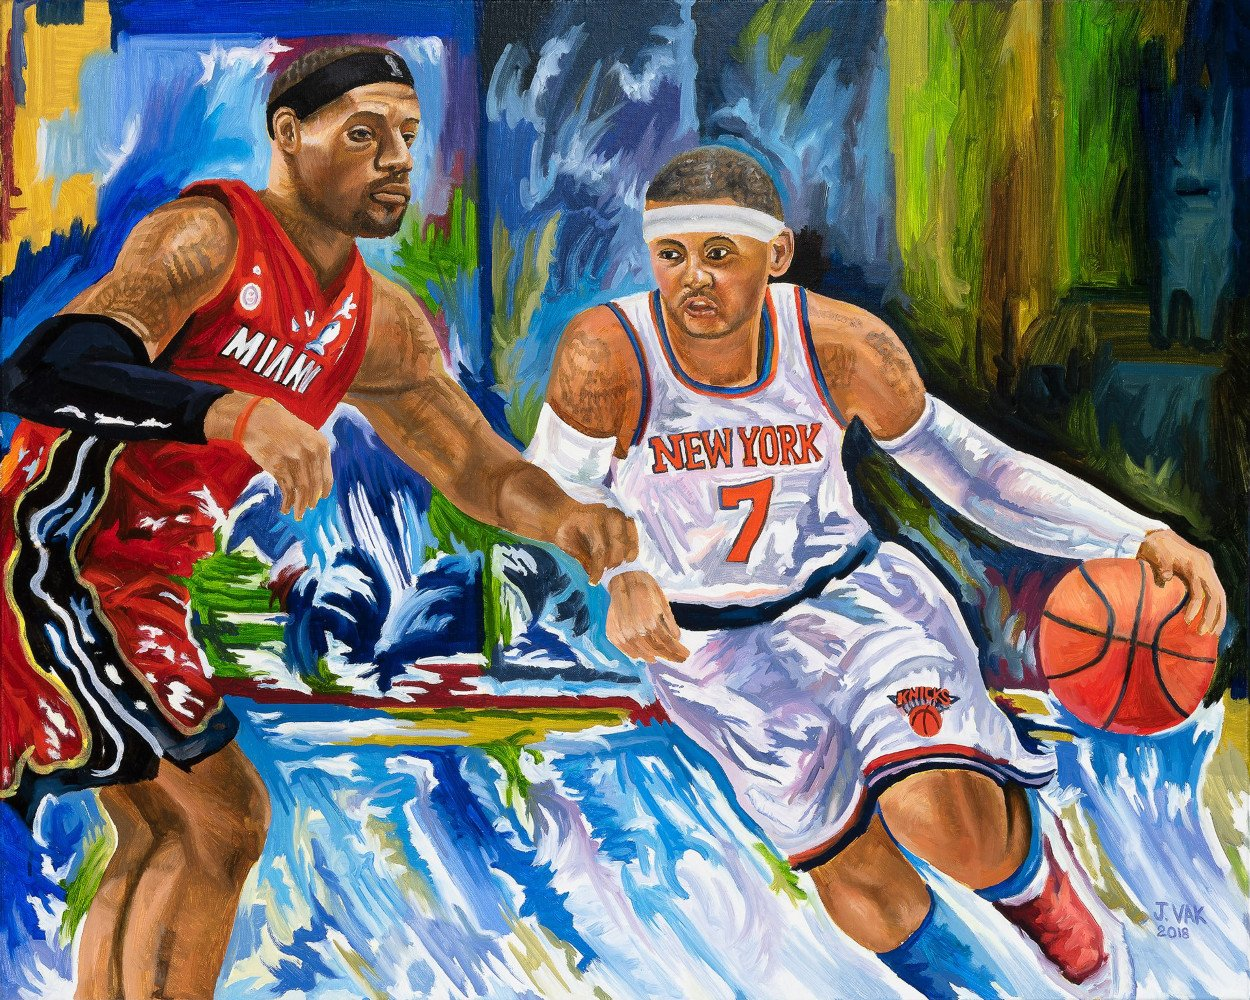 LeBron James and Carmelo Anthony             24 X 30 Original Oil                    $2500                     2018